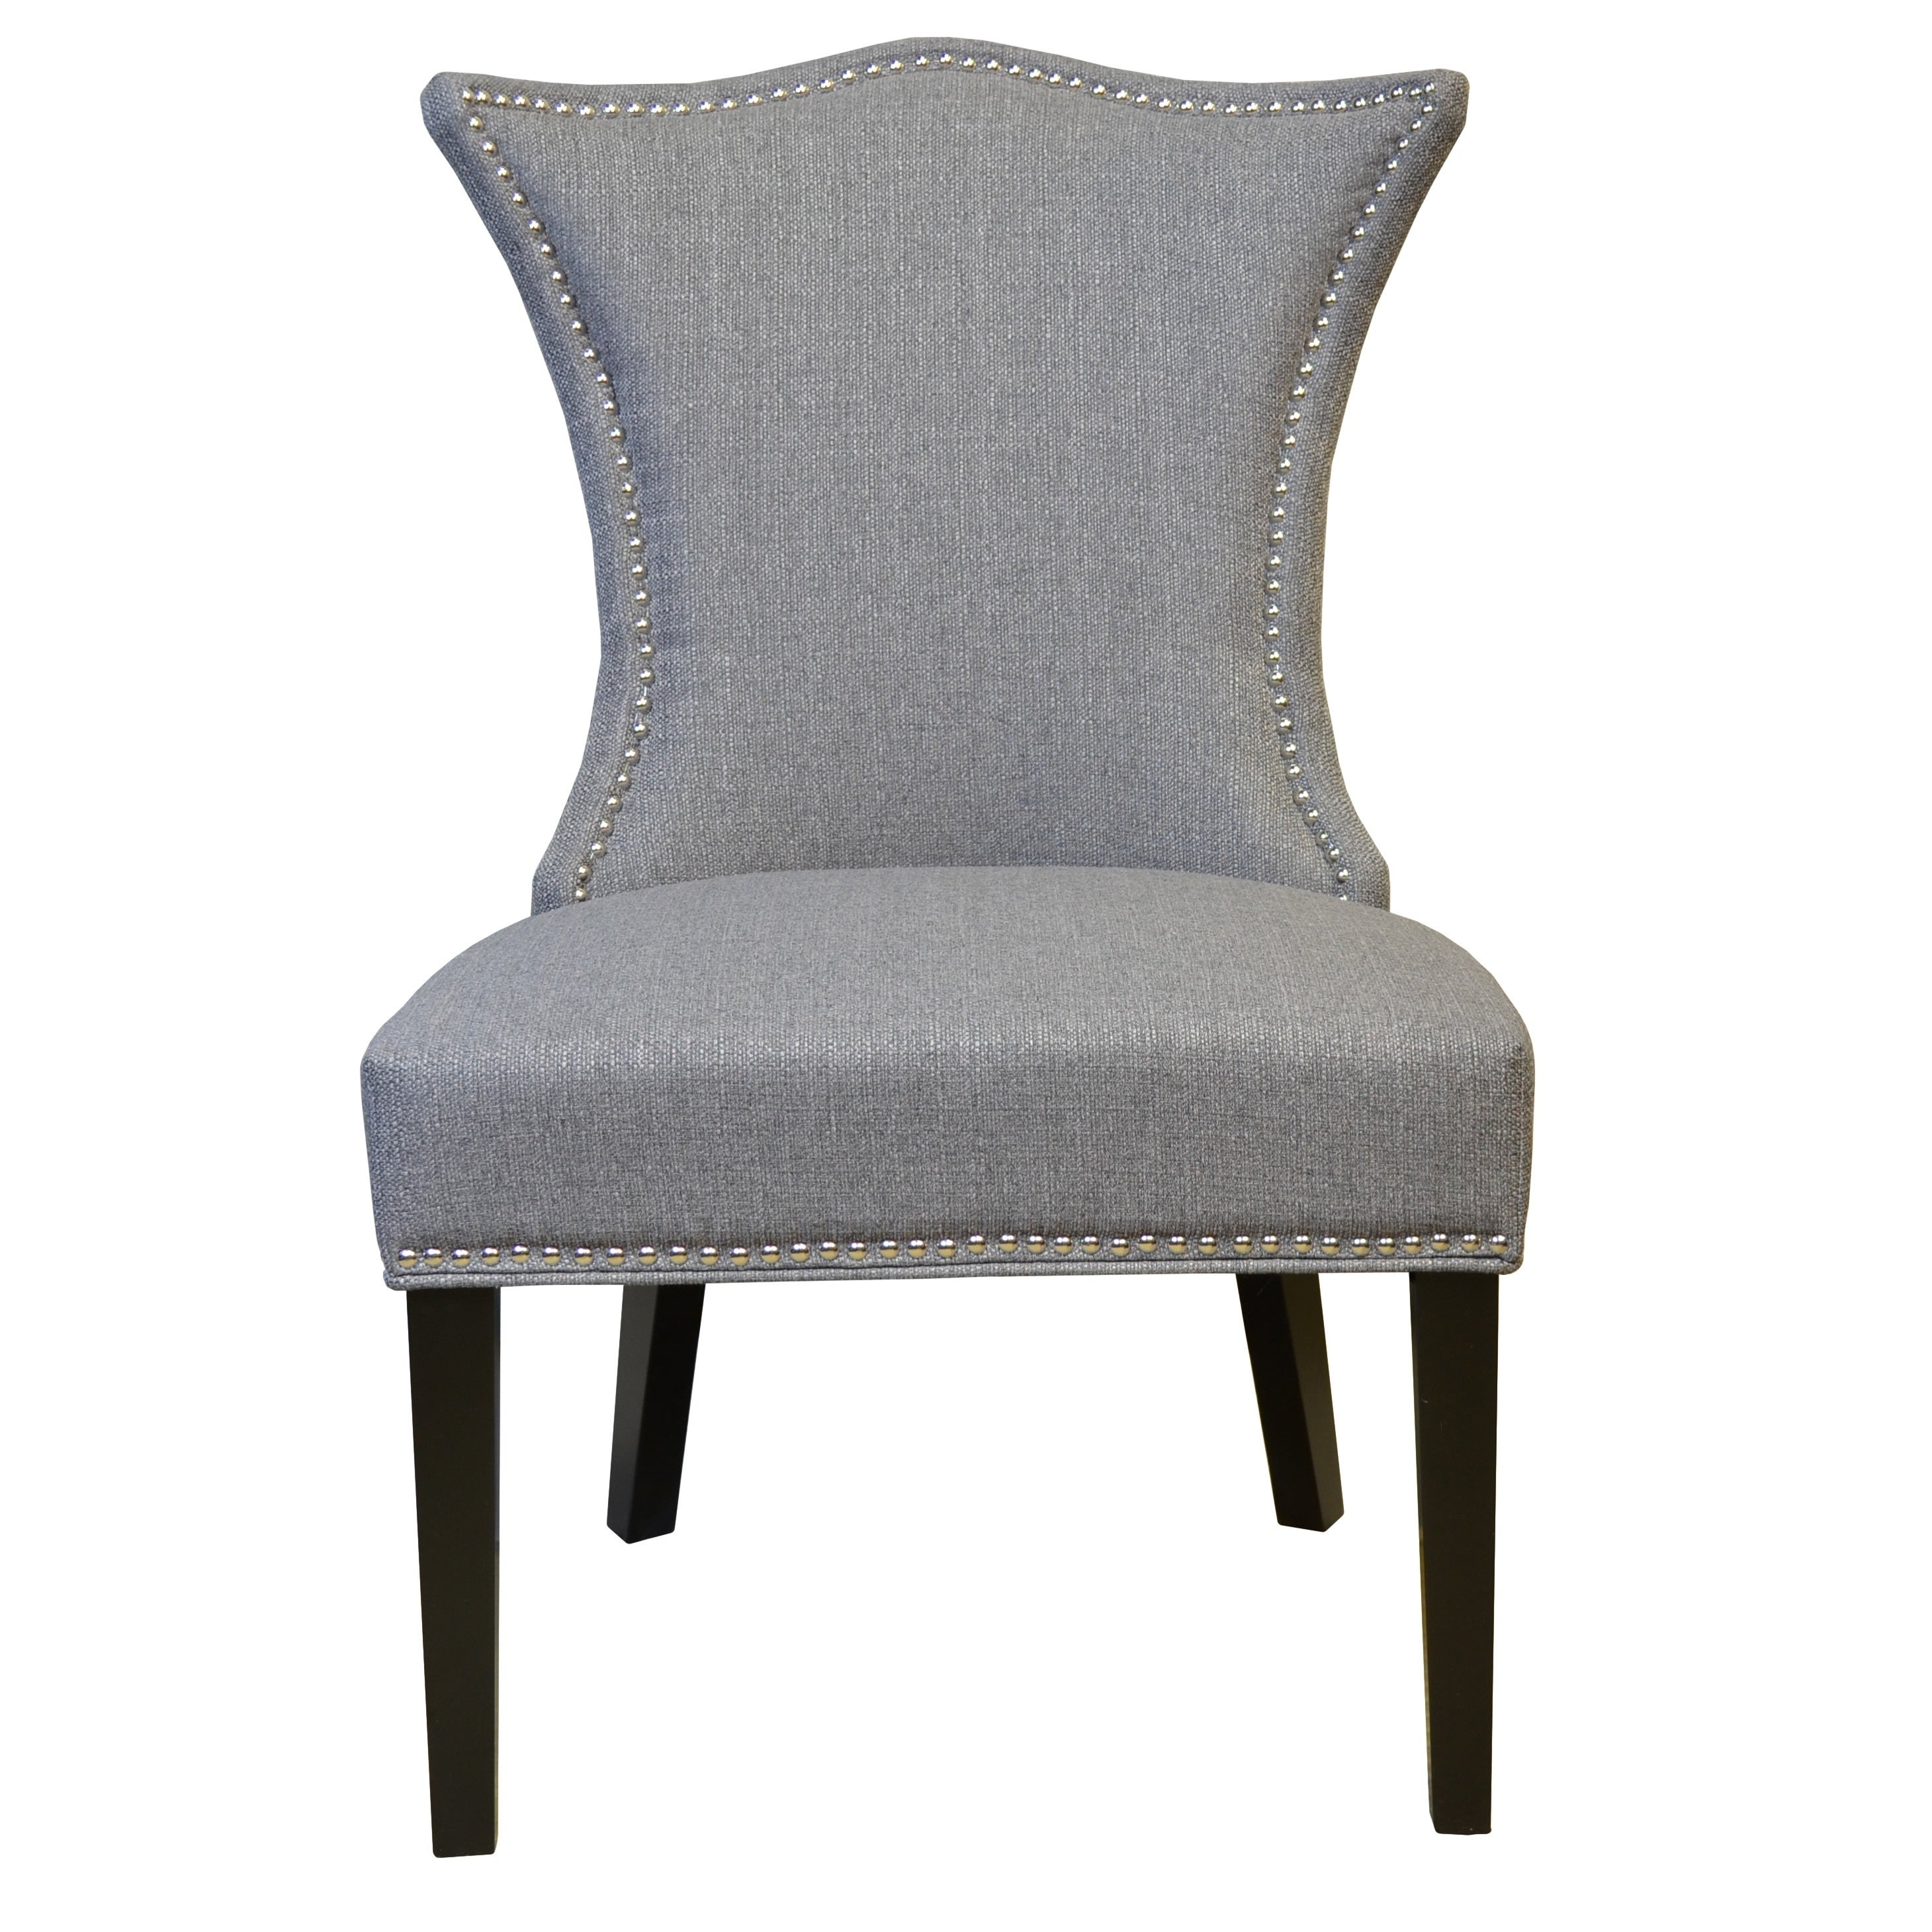 Attrayant Copper Grove Headwaters Tufted Back Grey Linen Chair